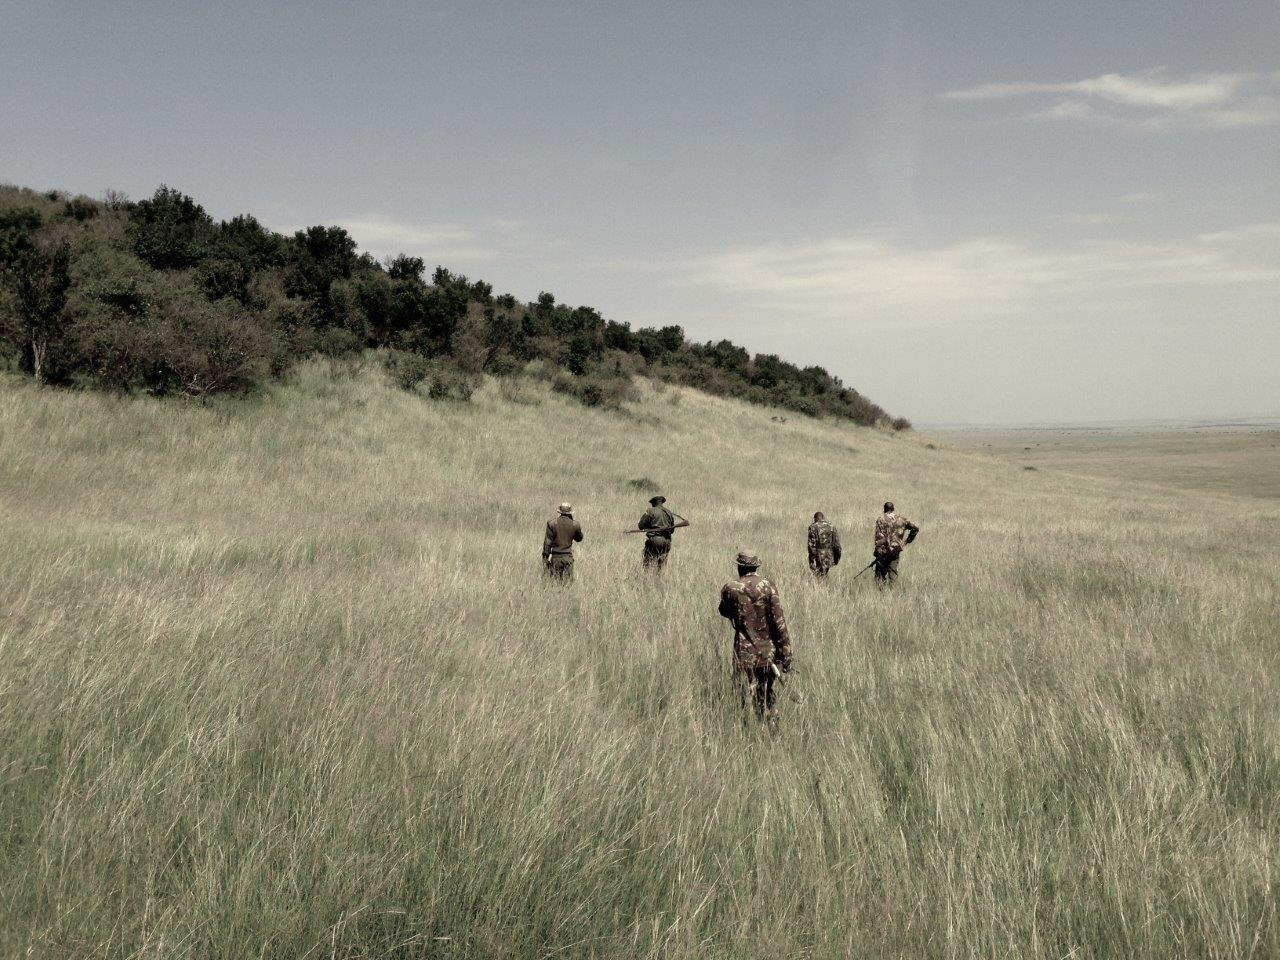 Rangers in Grass_FullSizeRender low res